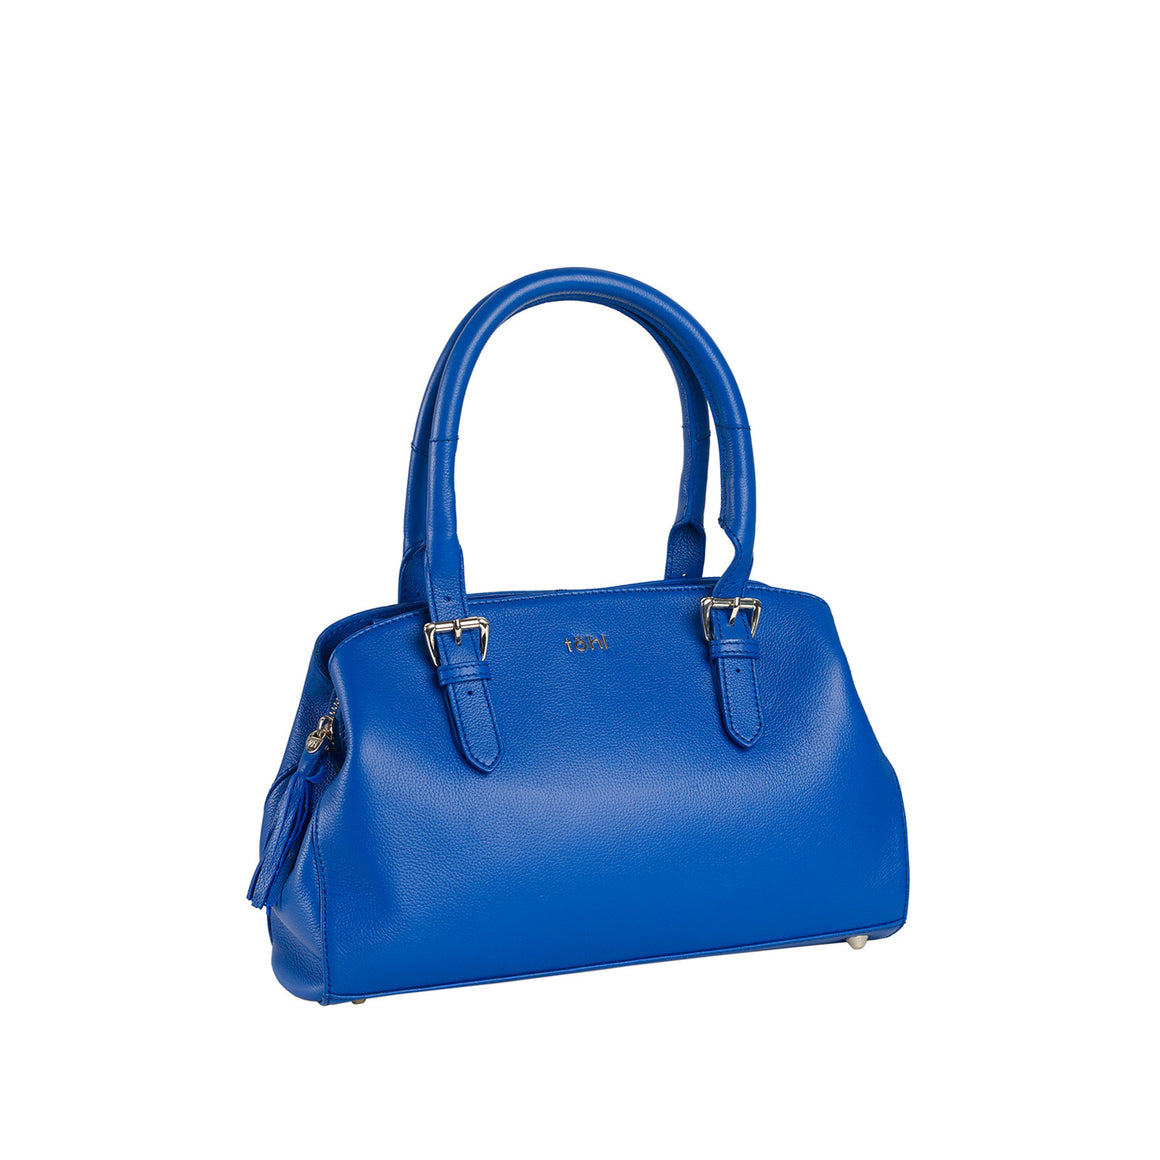 HH 0010 - TOHL ALVA WOMEN'S DAY BAG - COBALT BLUE